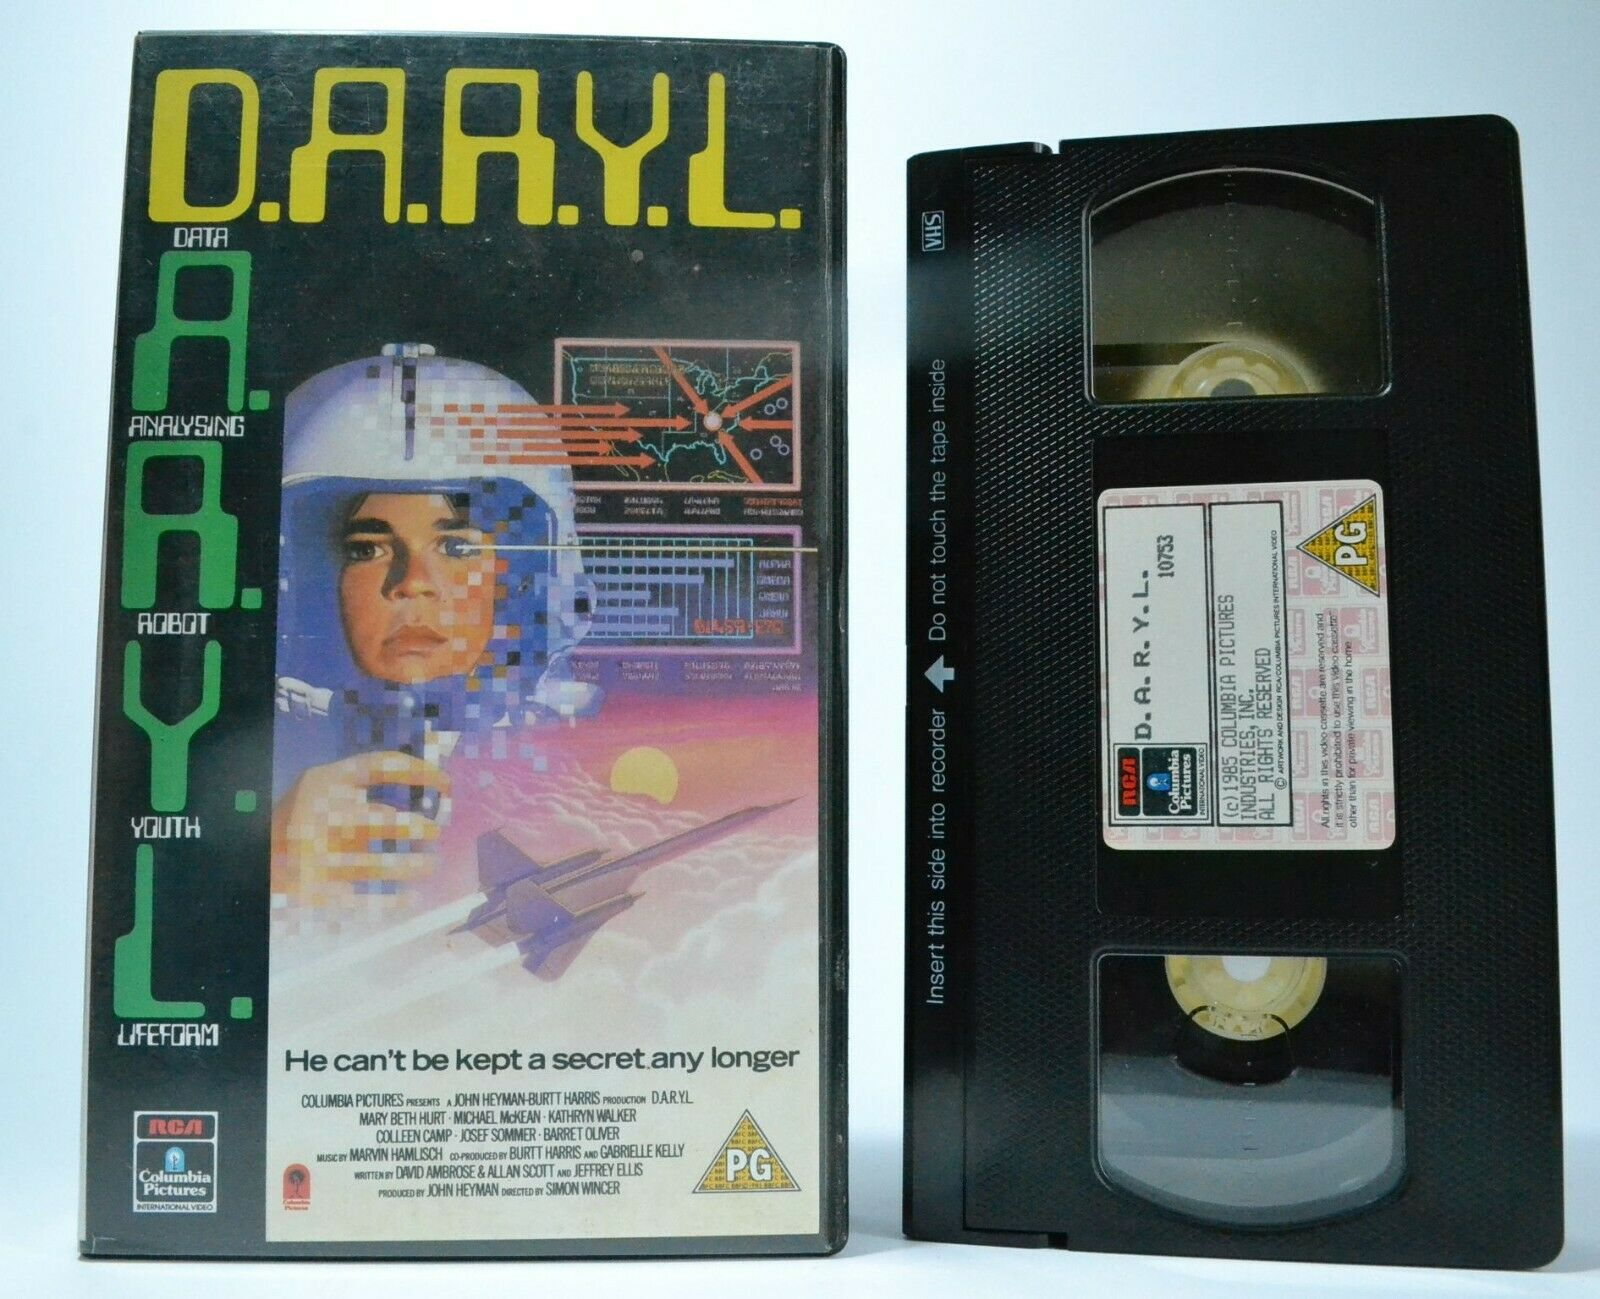 Artificial, Experiment, Experimental, Intelligence, Pal, Sci-Fi & Fantasy, VHS